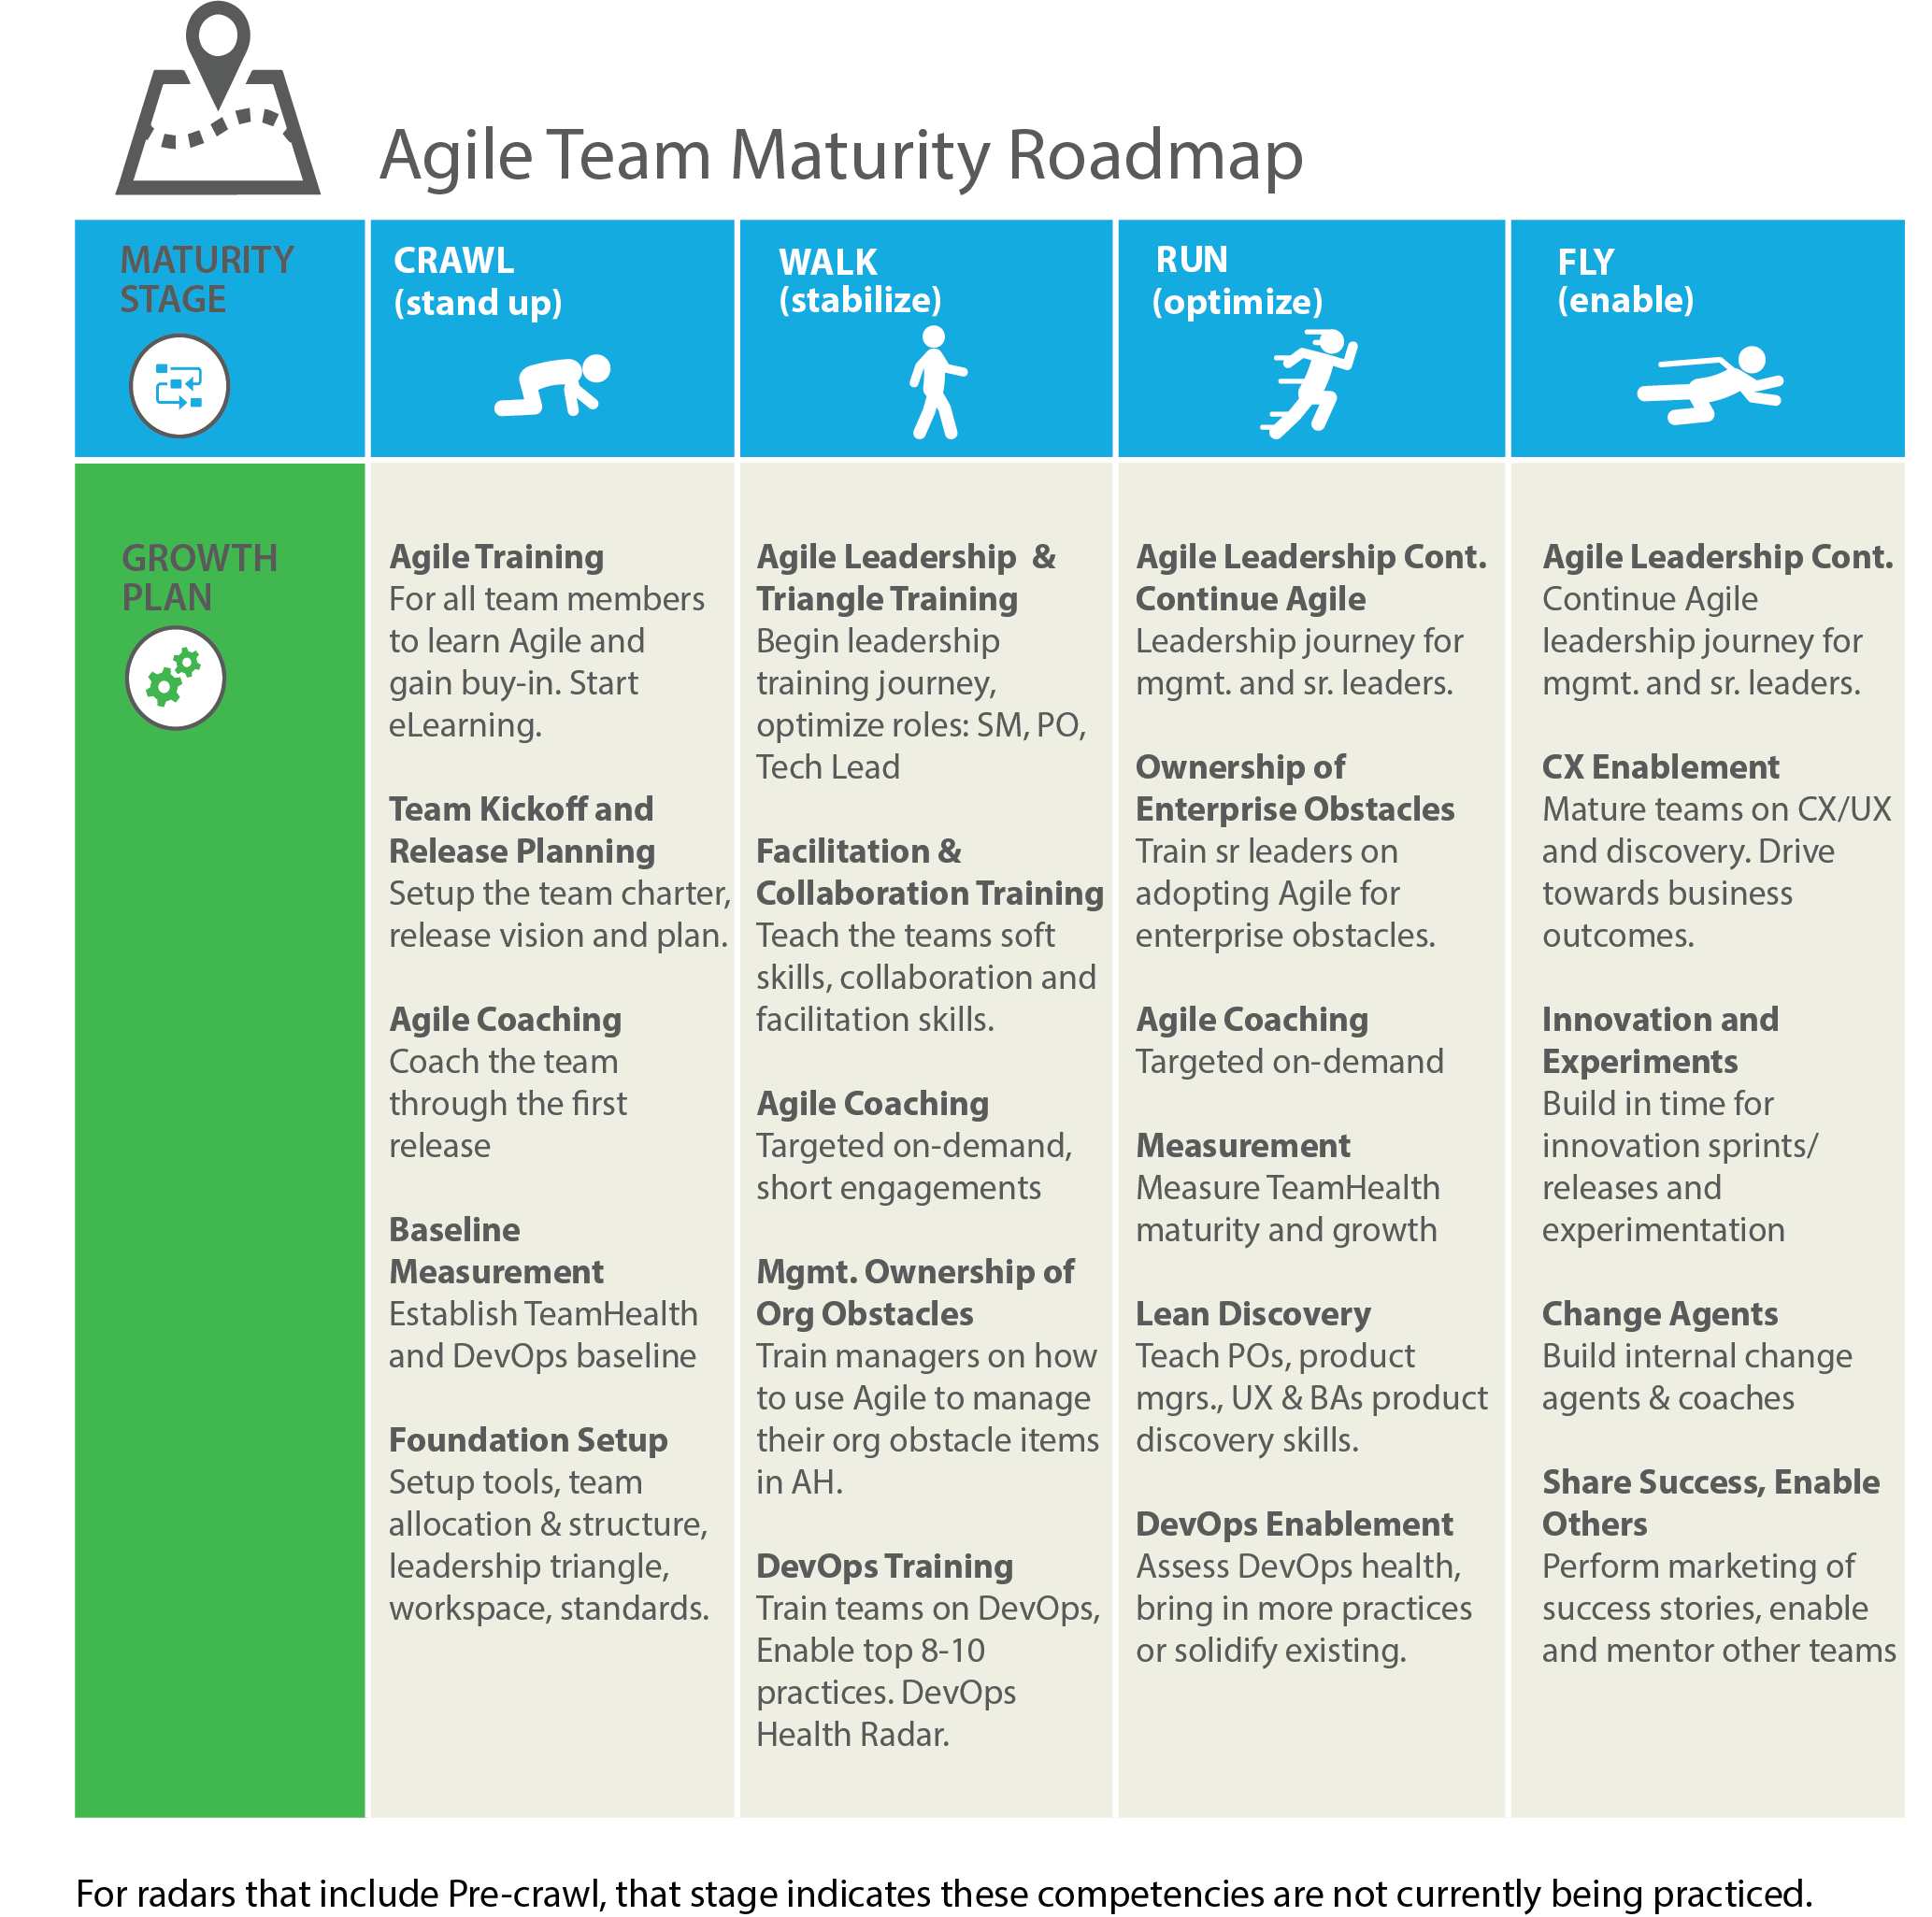 Agile_Team_Maturity_Roadmap_pg_2.png